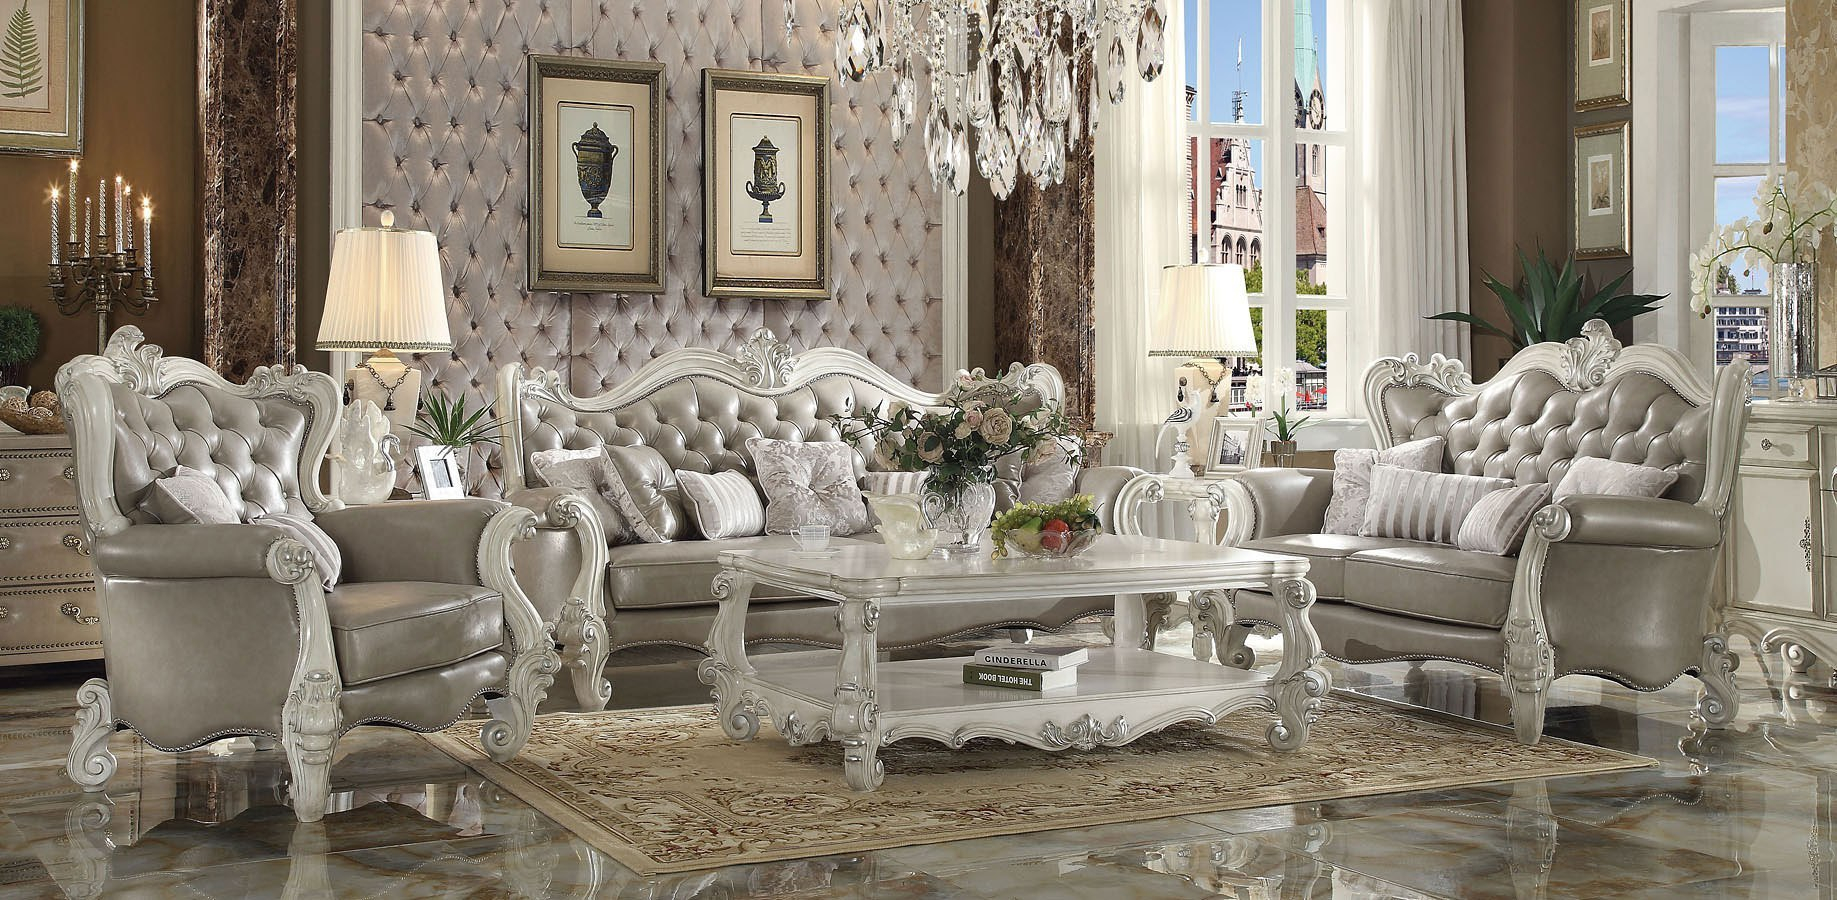 Versailles Living Room Set Vintage Gray Pu Acme Furniture throughout 10 Clever Ways How to Improve Vintage Living Room Sets